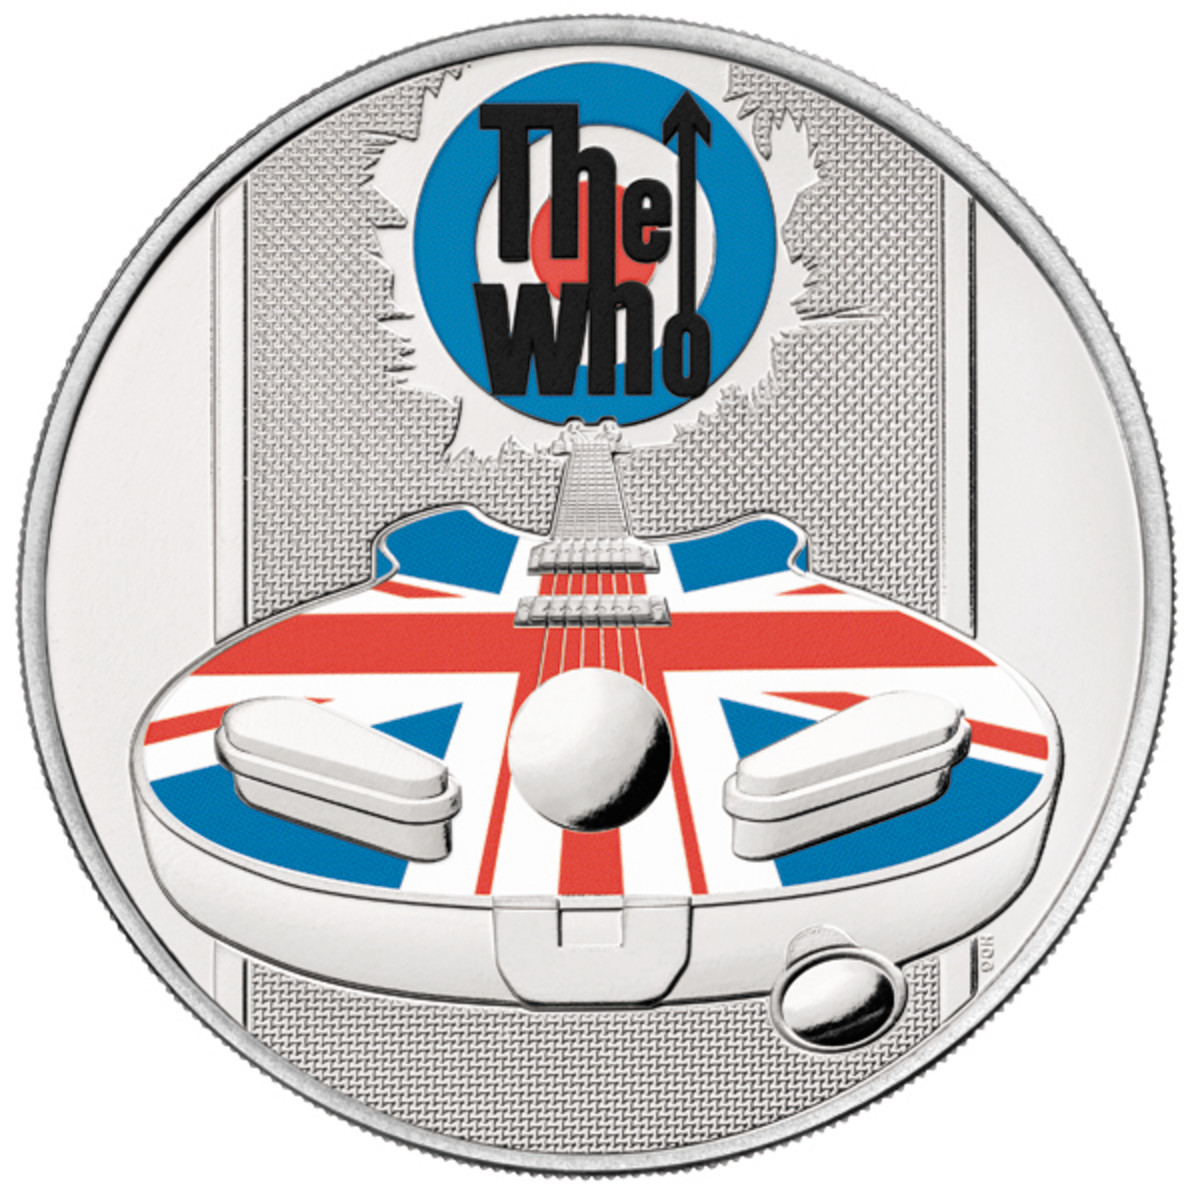 With elements of The Pinball Wizard, union jack backed logos and Pete Townshend's speaker-smashing Rickenbacker guitar, this design by artist Henry Gray covers many of our remembered symbols of a band that changed everything about rock music.